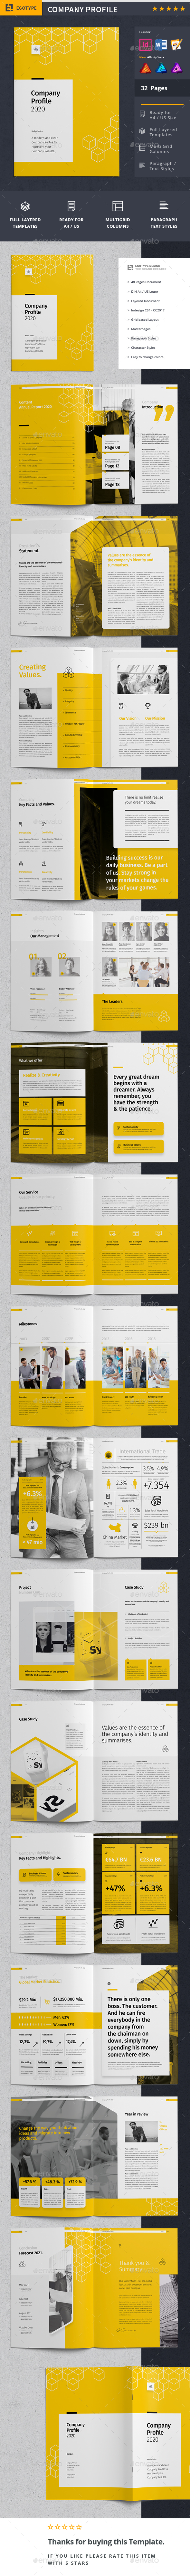 6 Page Brochure Template from previews.customer.envatousercontent.com